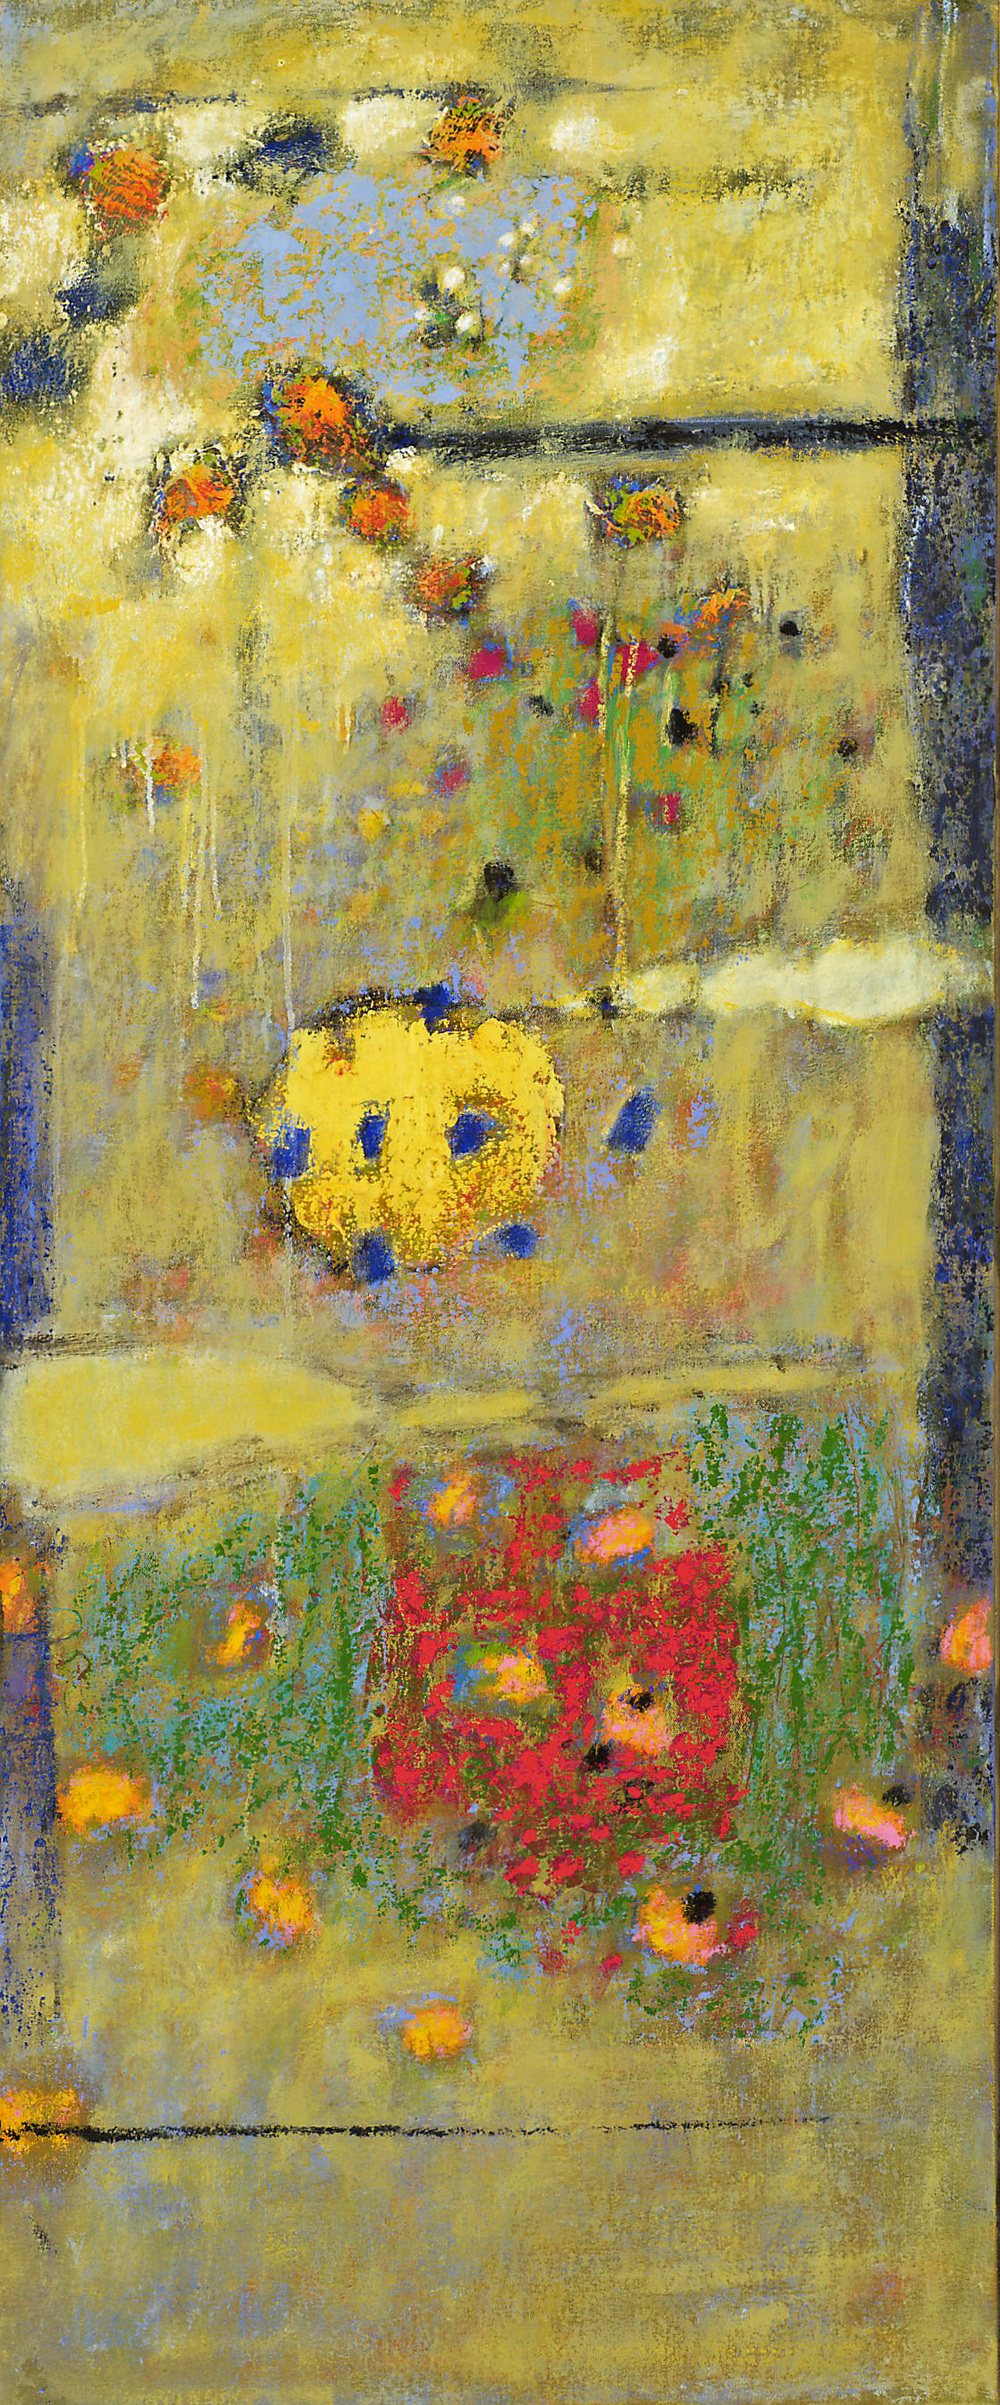 Peaceful Neighborhood   | oil on canvas | 48 x 20"